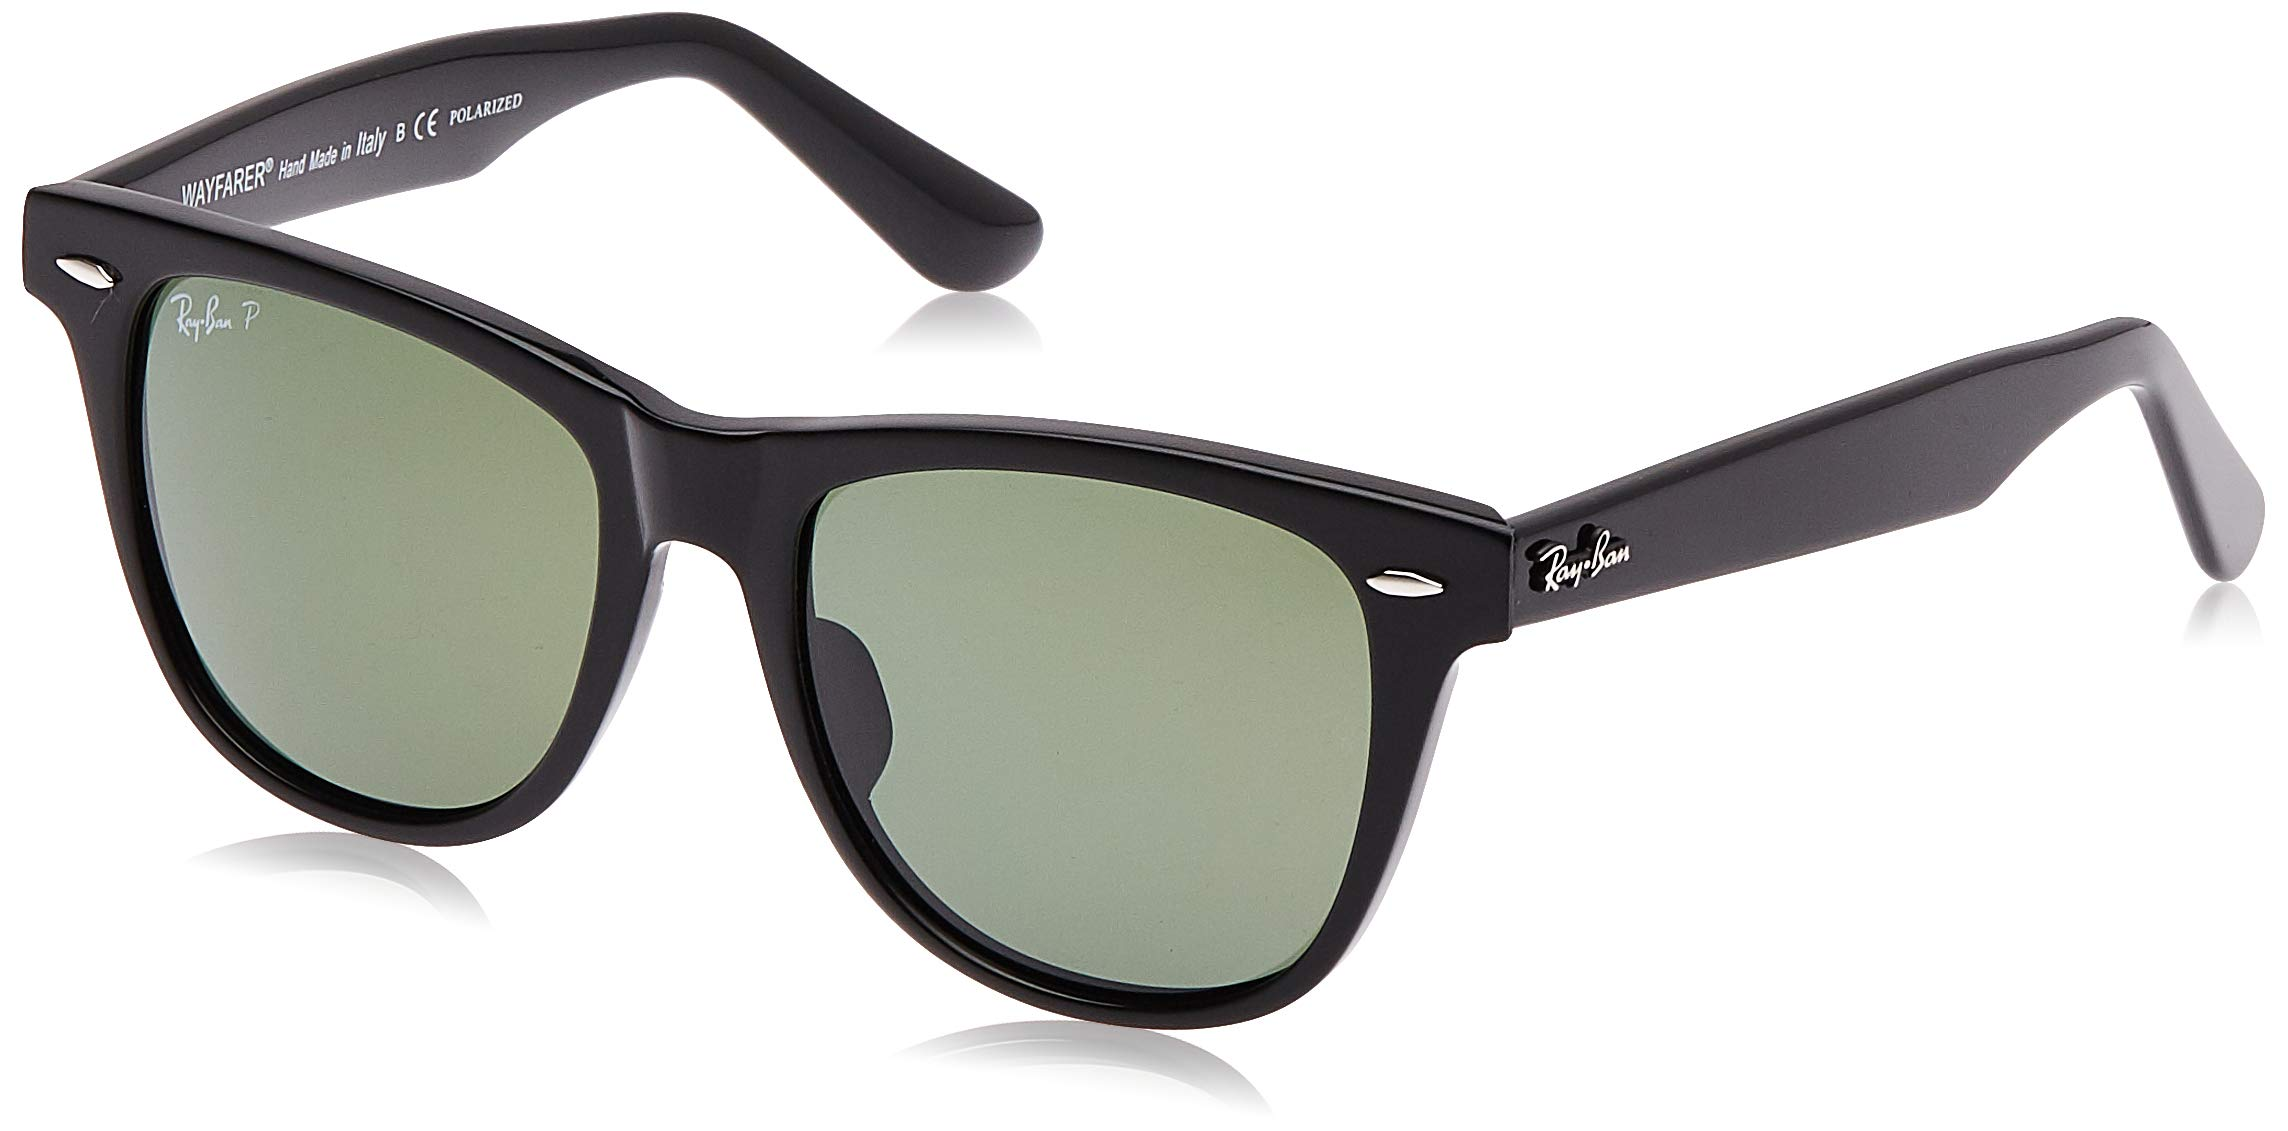 Ray-Ban RB2140 Wayfarer Sunglasses, Black/Polarized Green 1, 50 mm by RAY-BAN